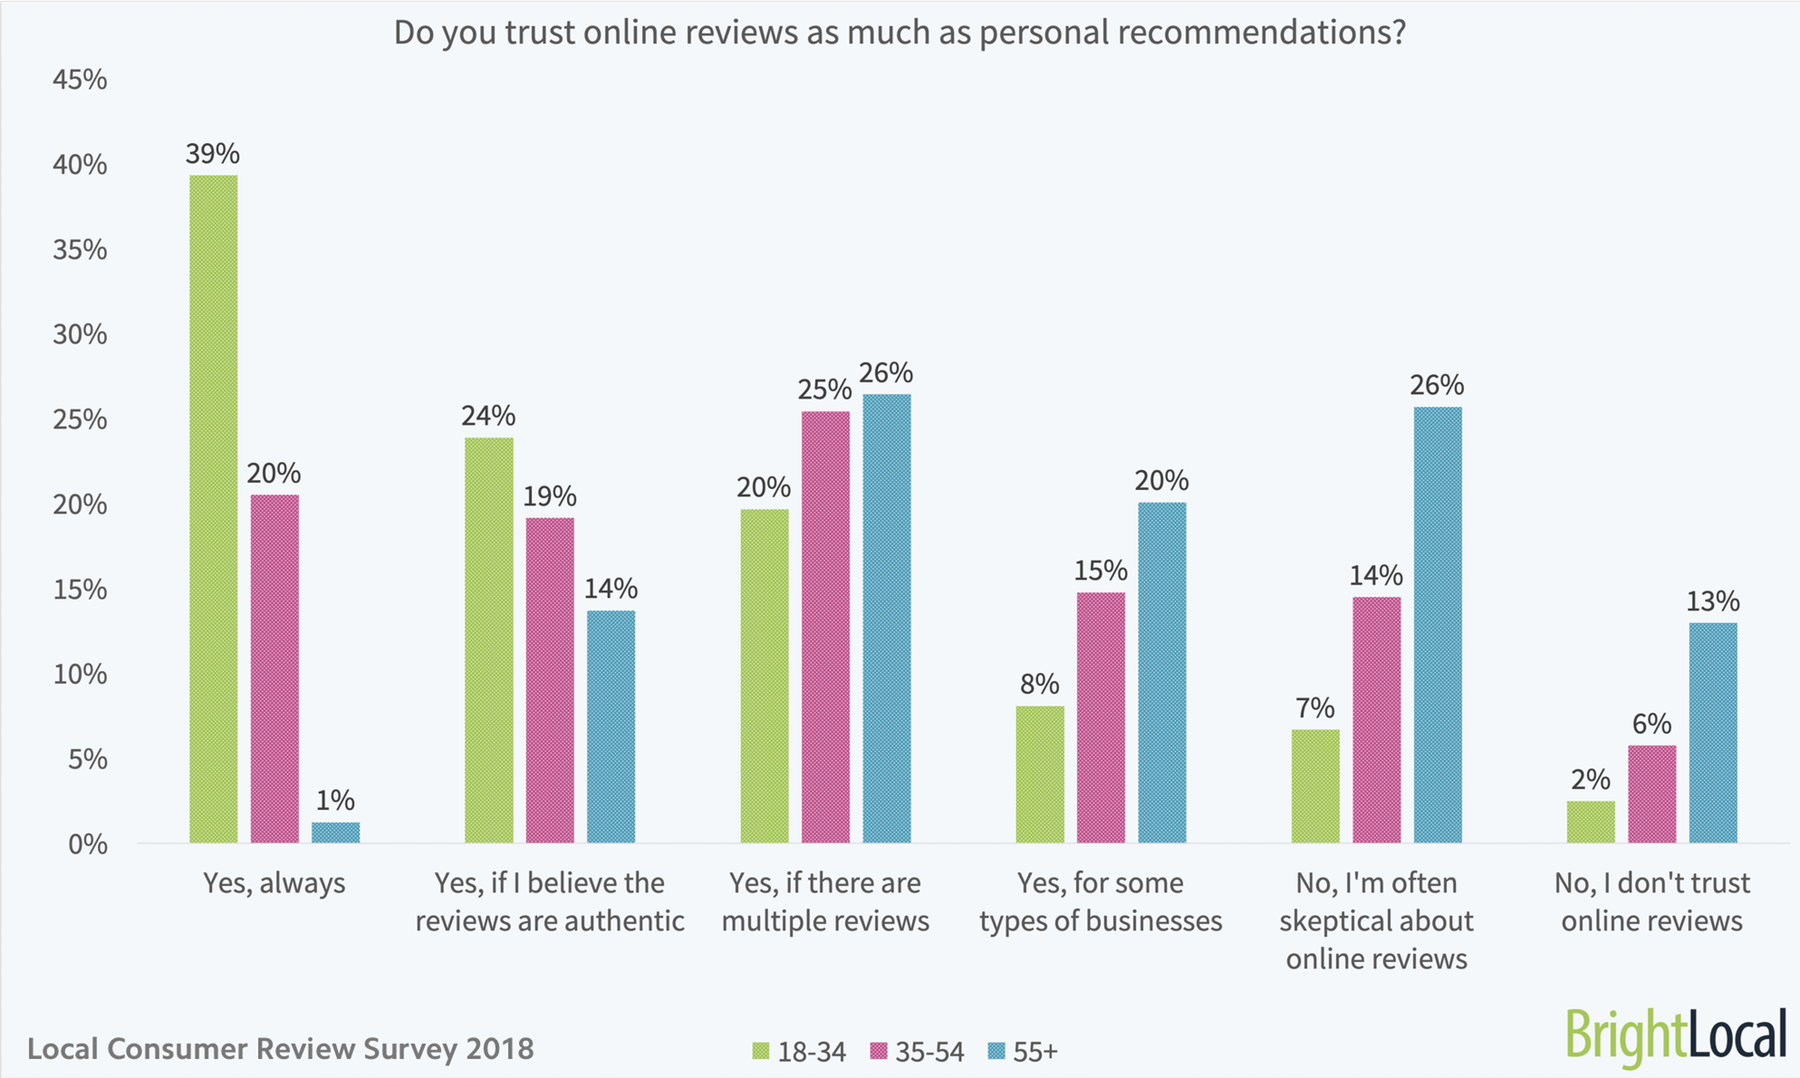 Do you trust online reviews as much as personal recommendations age split